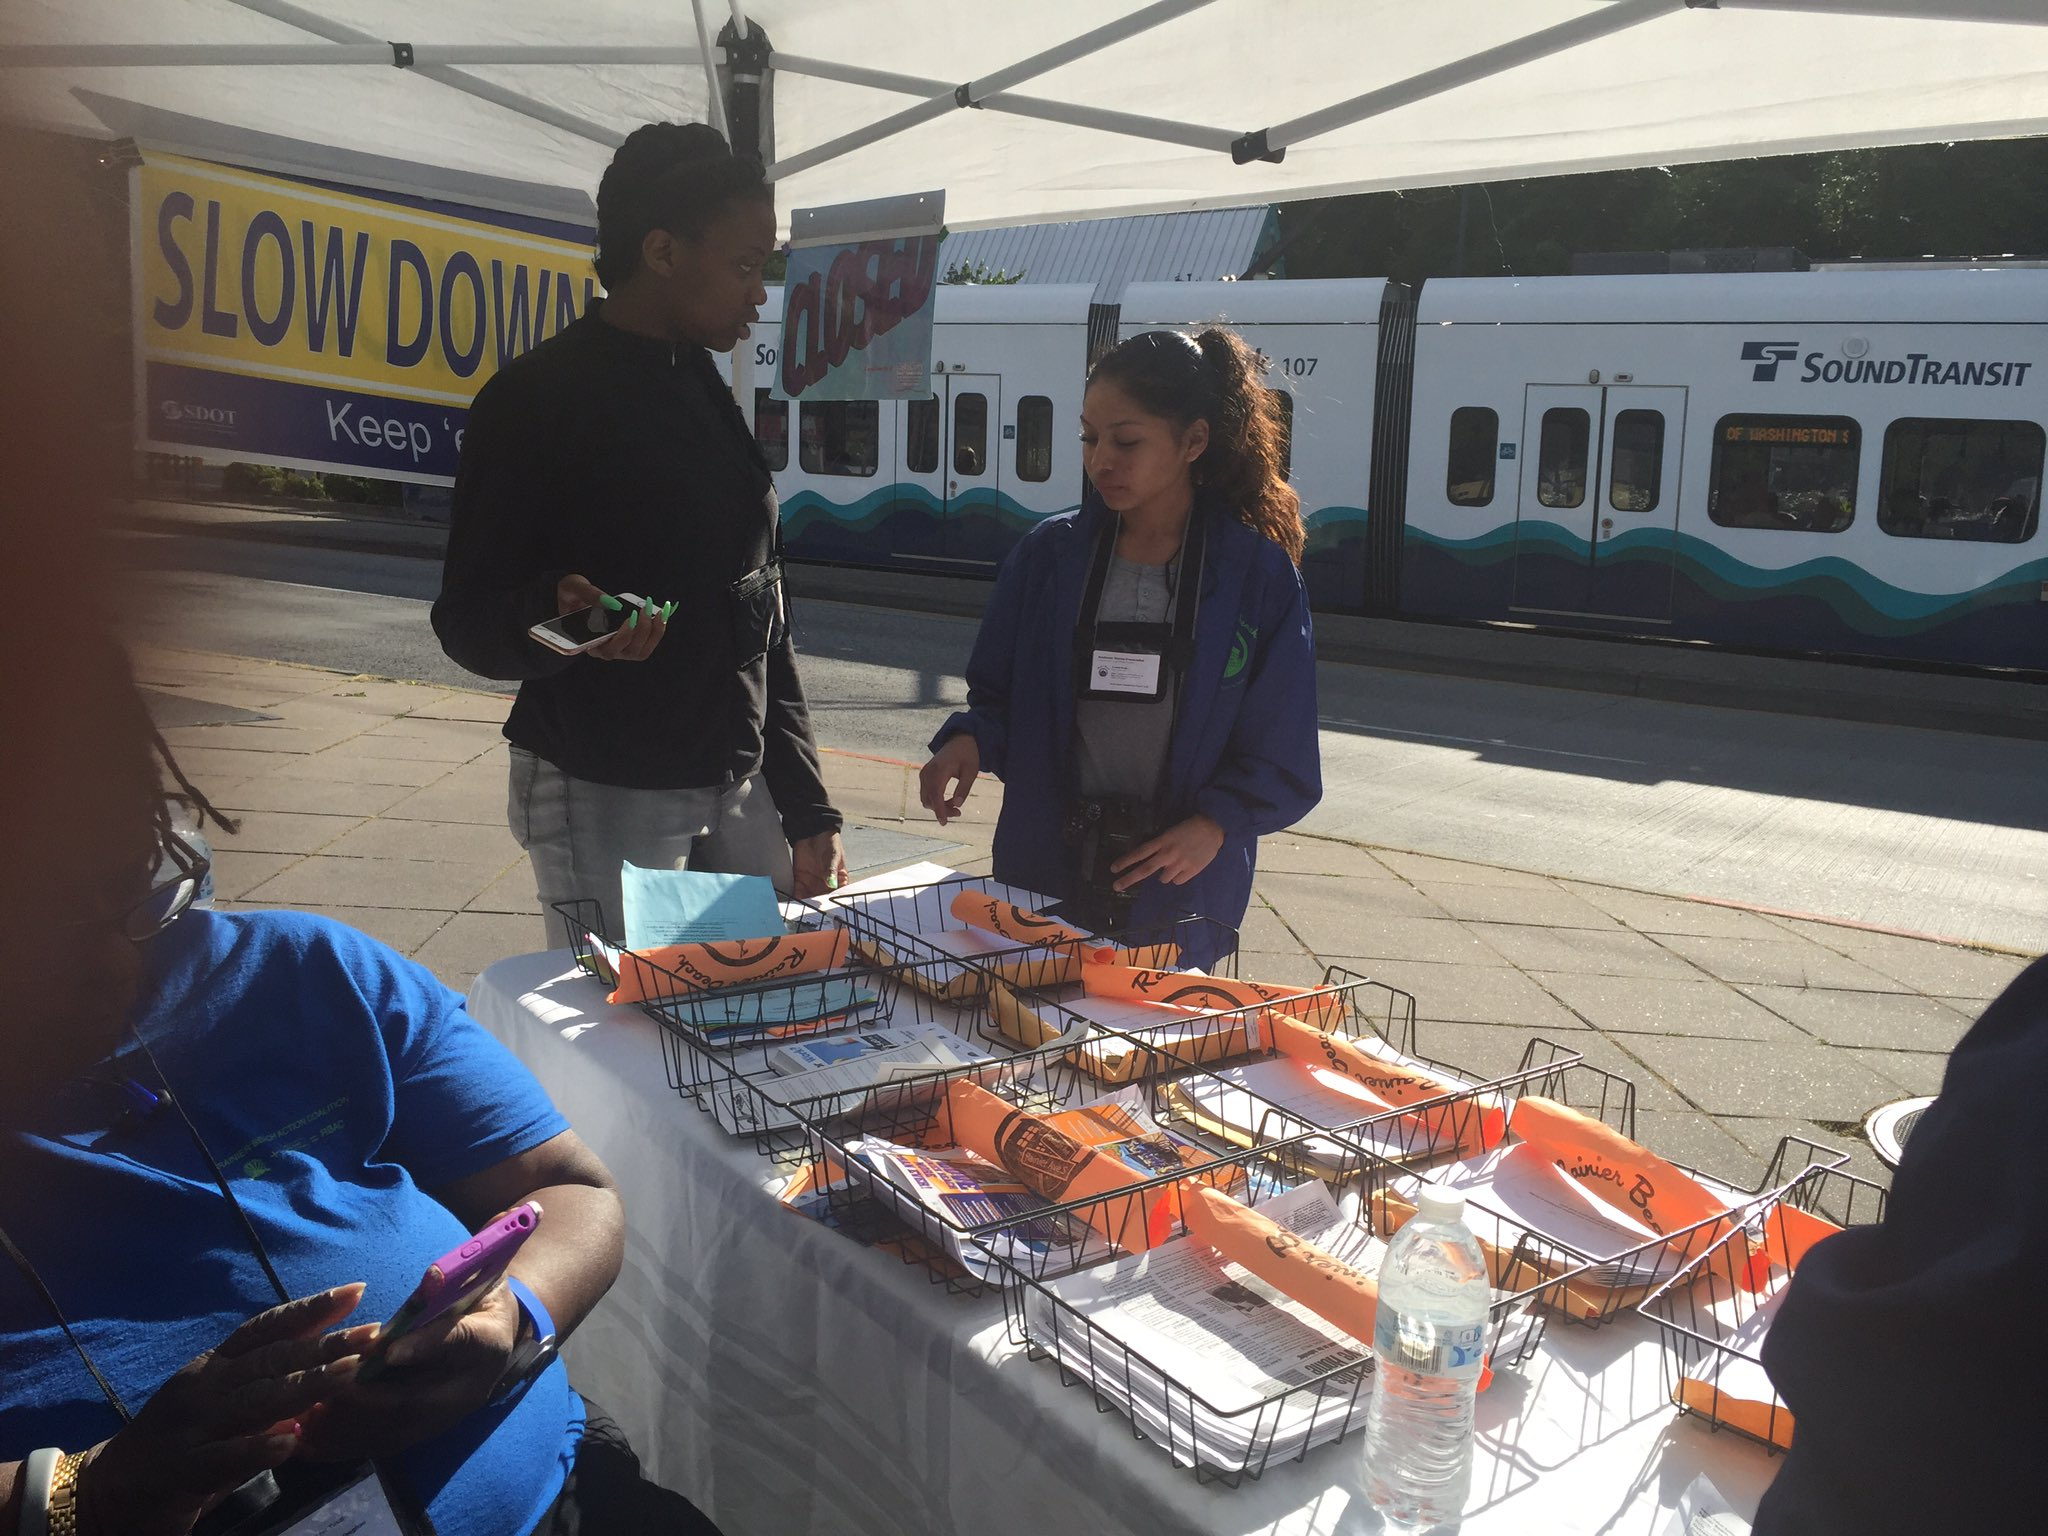 Rainier Beach A Beautiful Safe Place For Youth is at the light rail today https://t.co/efKmEZcth9